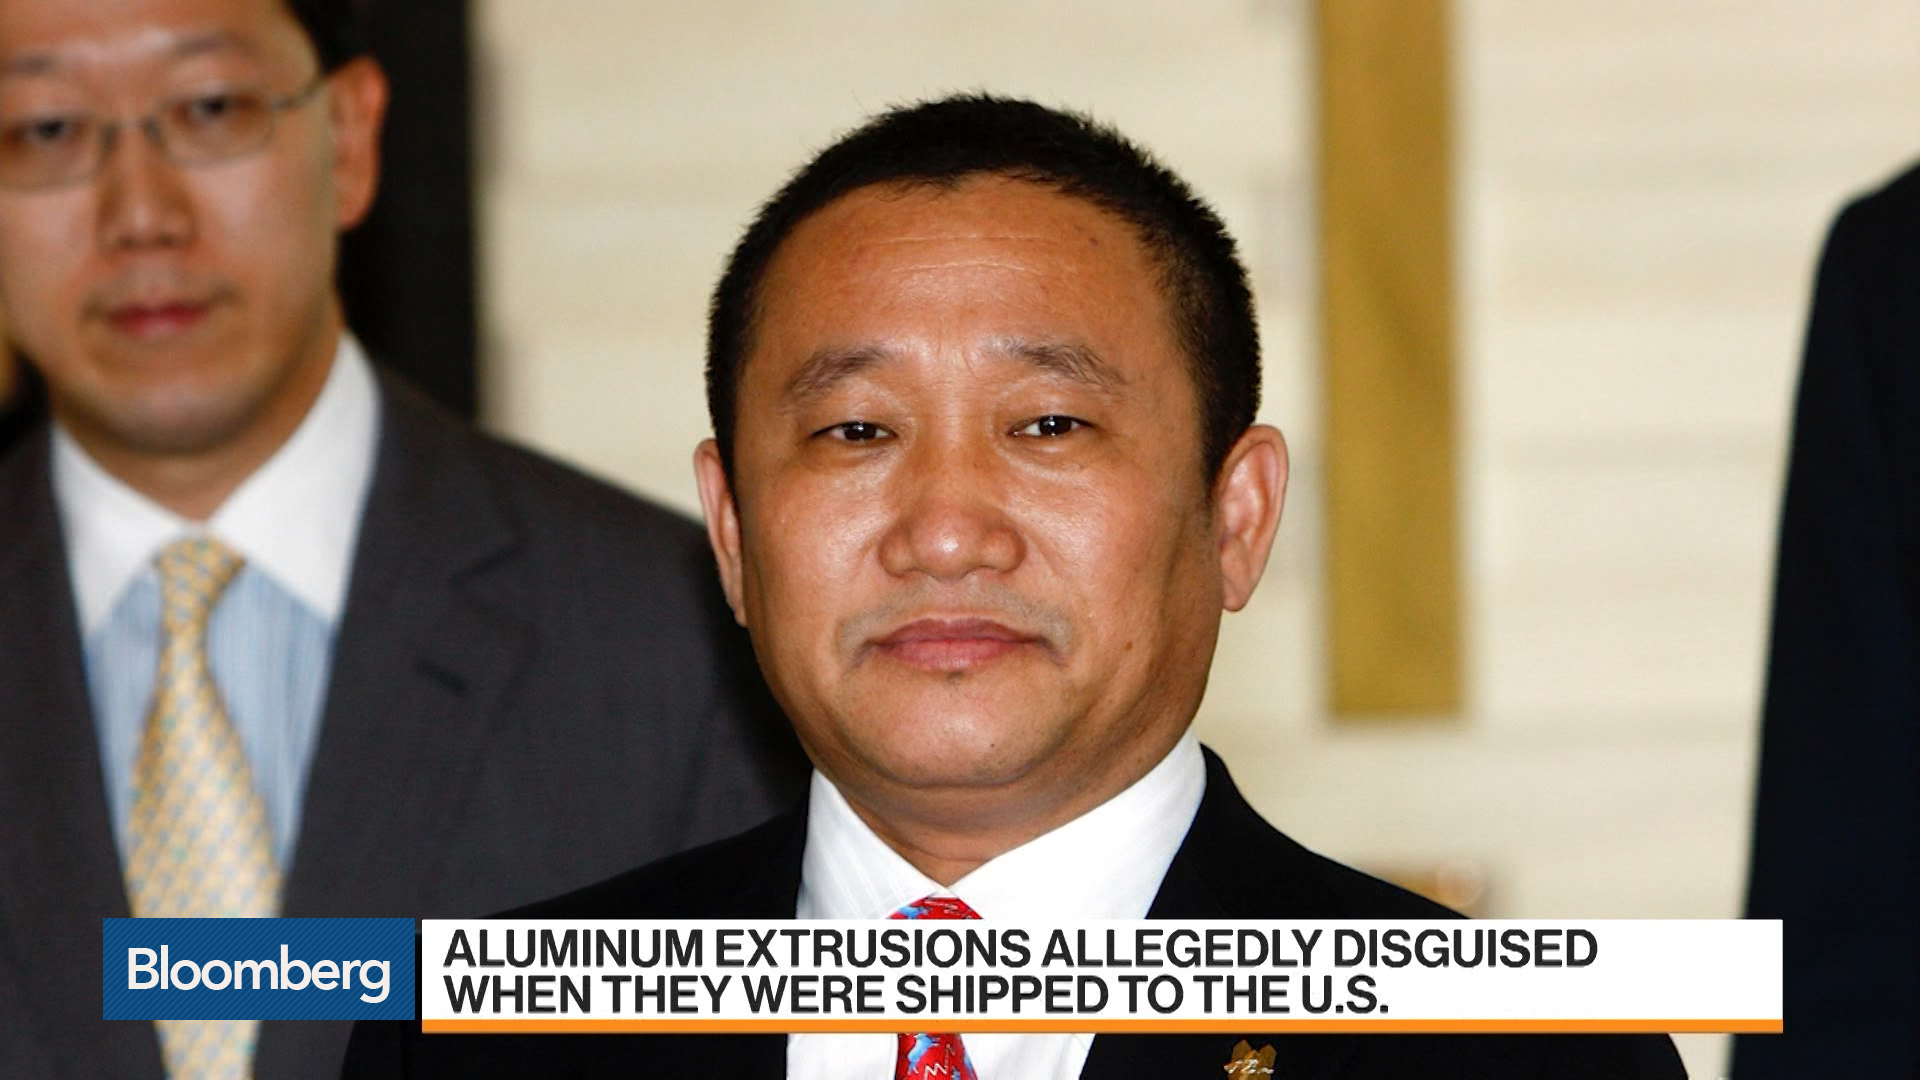 U.S. Charges Chines Billionaire With Evading Aluminum Tariffs